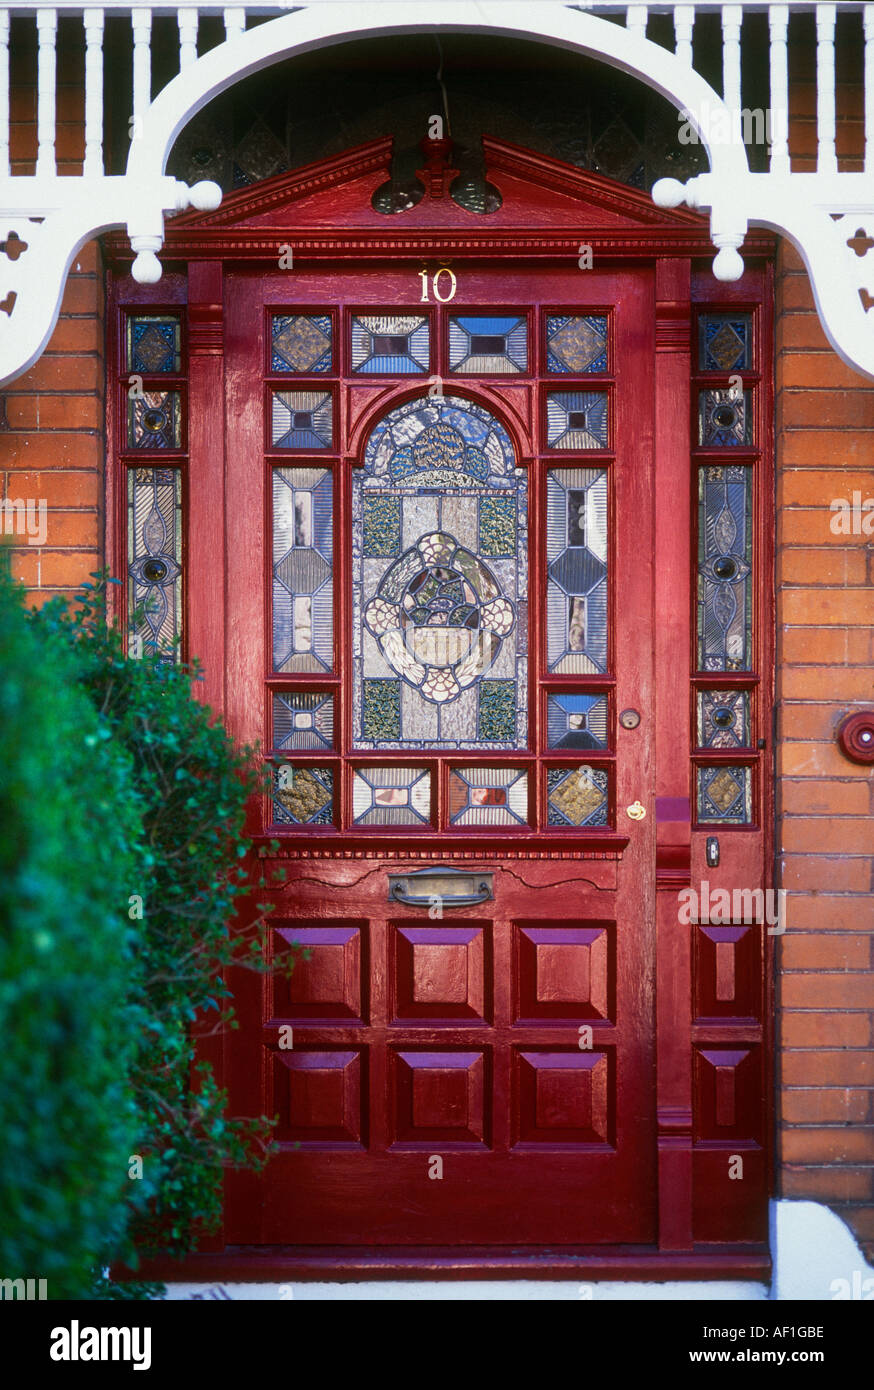 Exterior Stained Glass Red Front Door British Housing London Part 44